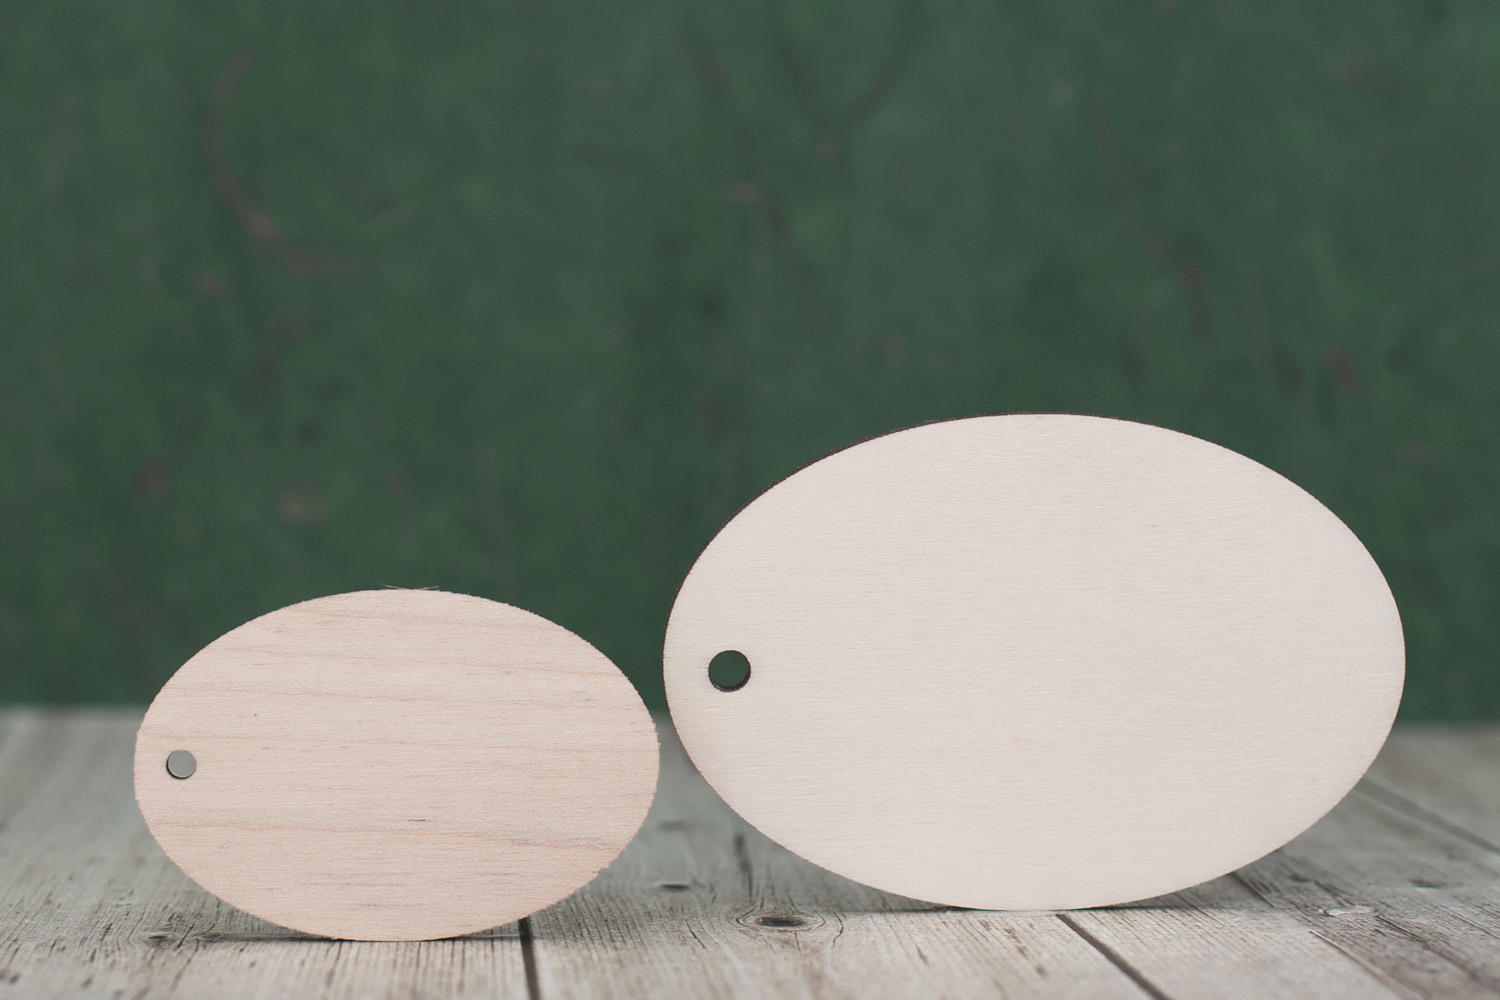 4mm Birch plywood laser cut oval key fob blank